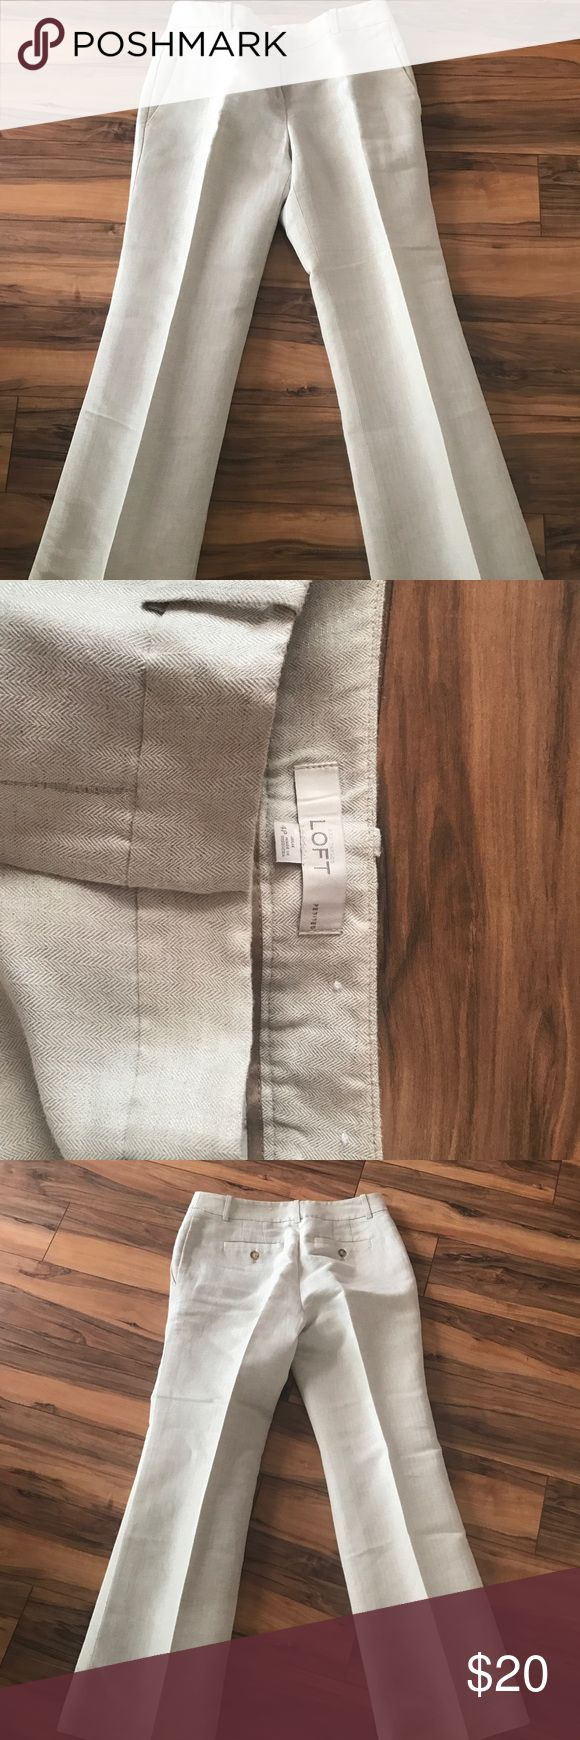 Ann Taylor Loft size 4 petite dress pants Light beige dress pants with a light silver shimmer, size 4 petite, excellent condition from a non smoking home. These pants have been dry cleaned after the last wear. There is minimal wear from where the pants have touched the ground. Dry clean only Ann Taylor Loft Pants Trousers